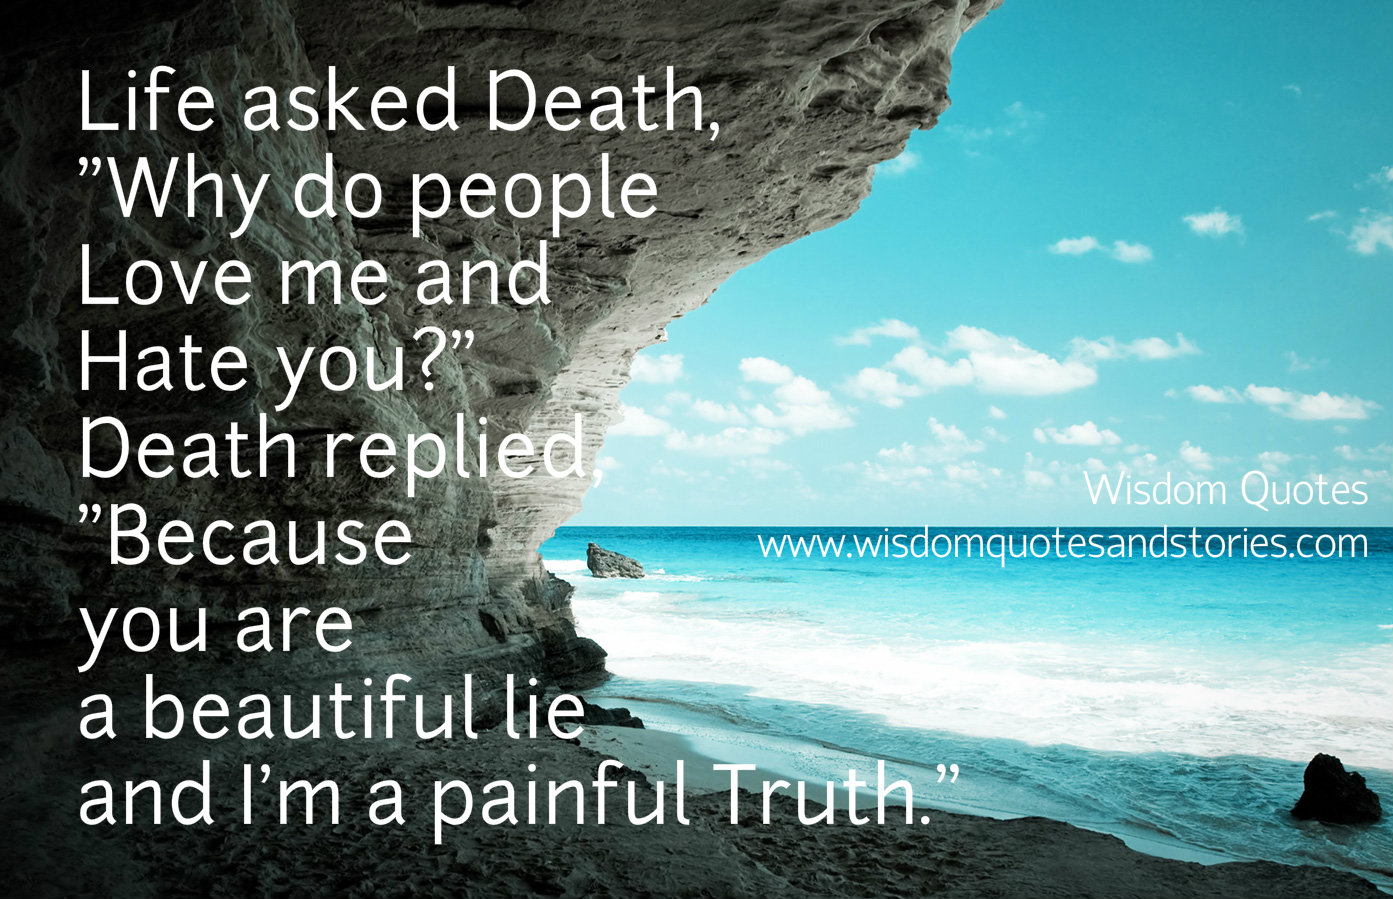 Life is a beautiful lie while death is a painful truth